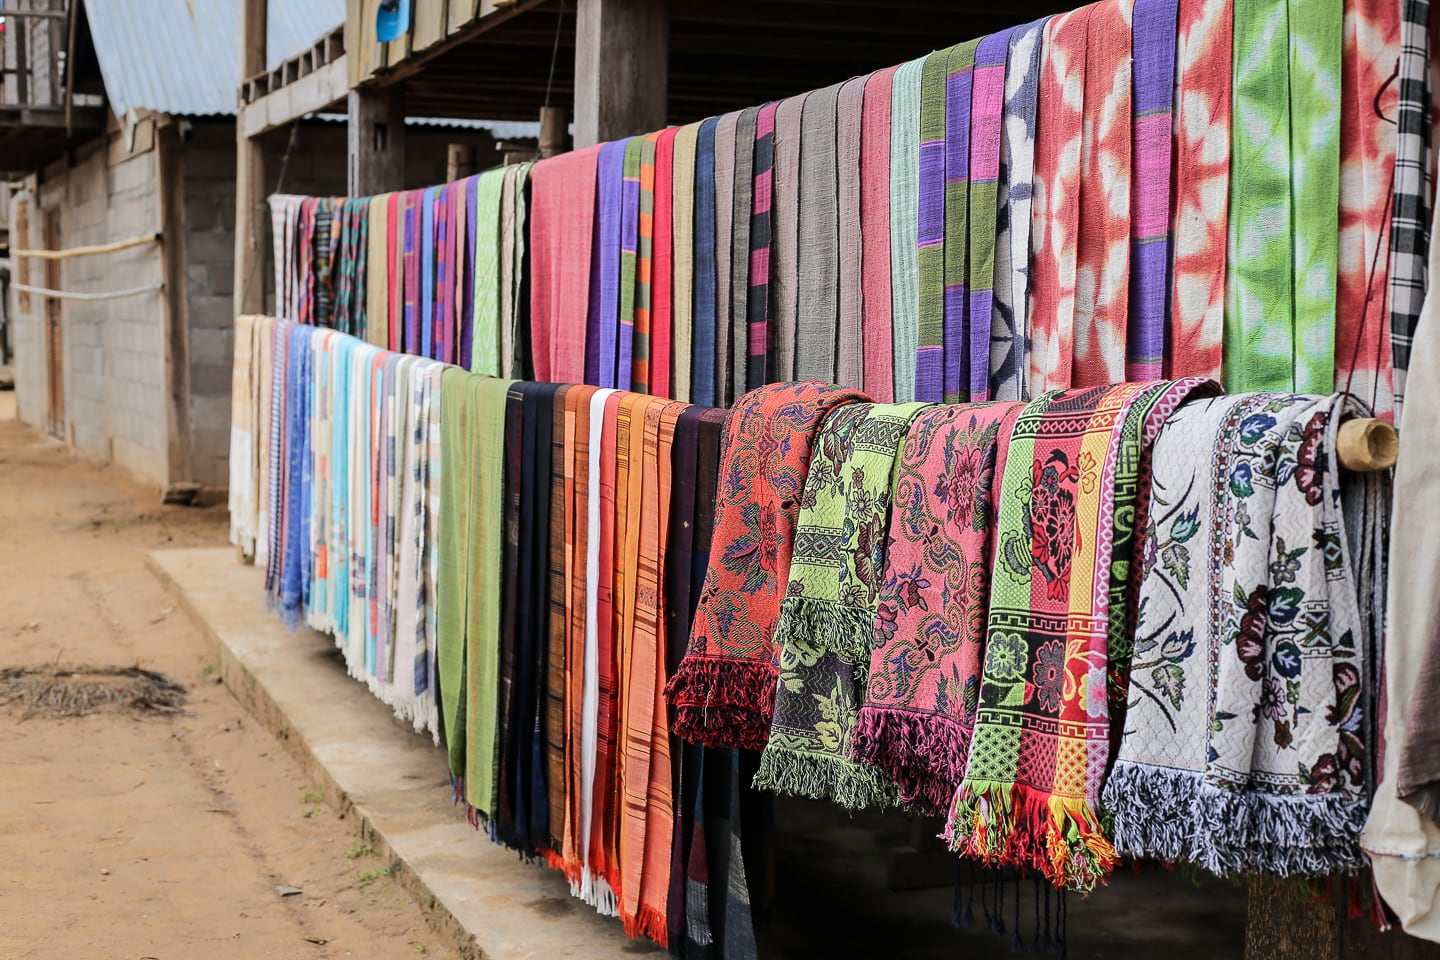 colorful Lao textiles on display in Sop Cham village